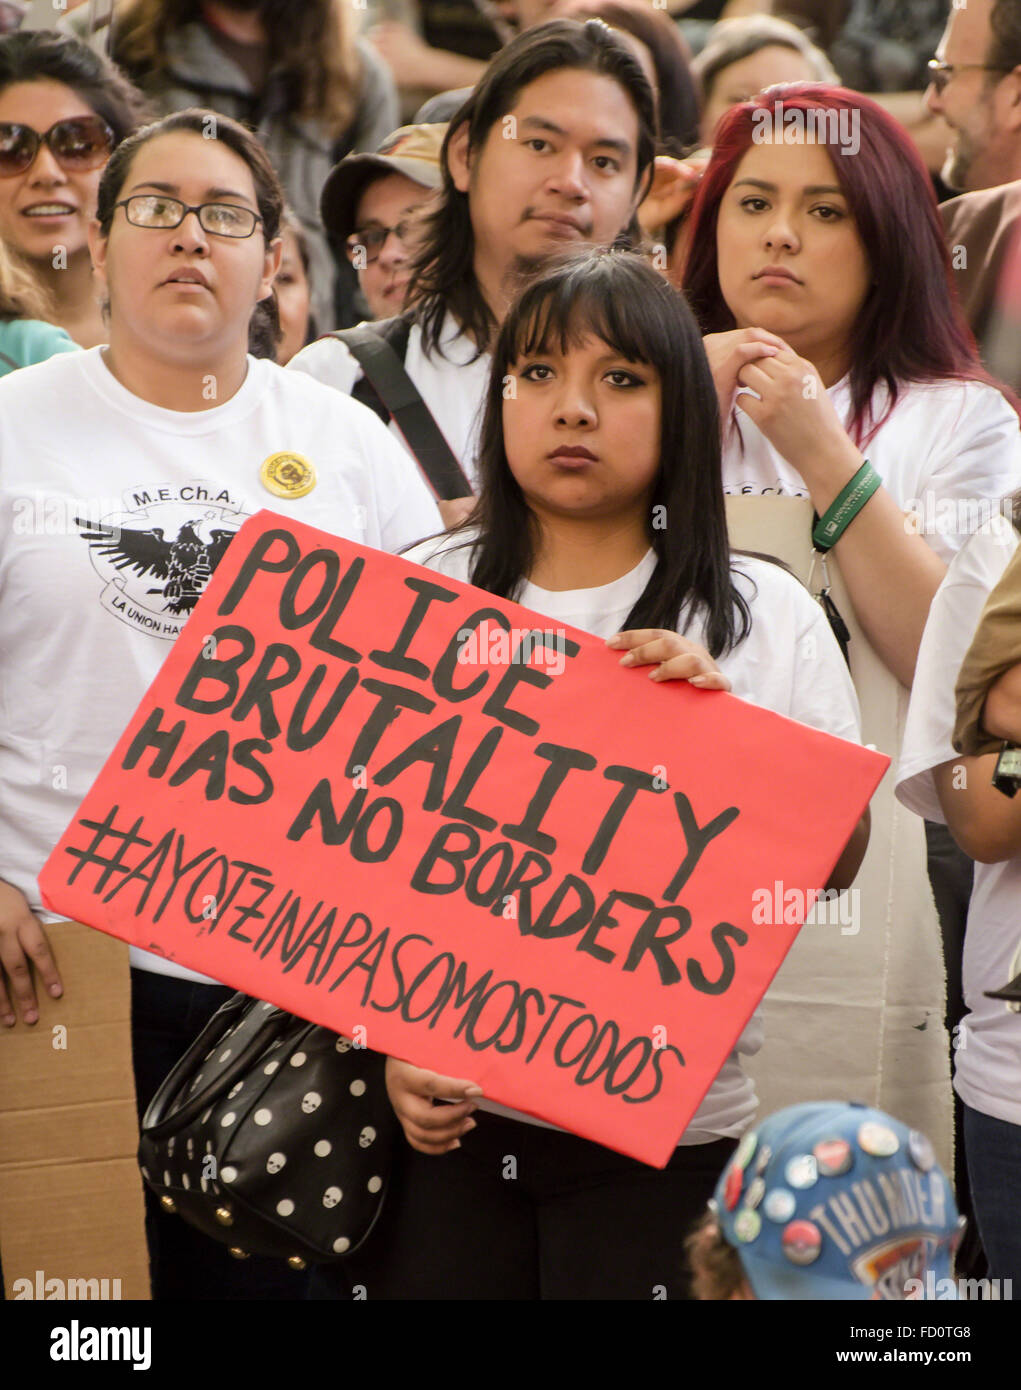 Young Hispanics hold sign that says Police Brutality Has No Borders during 2015 May Day Rally in Portland, Oregon. - Stock Image